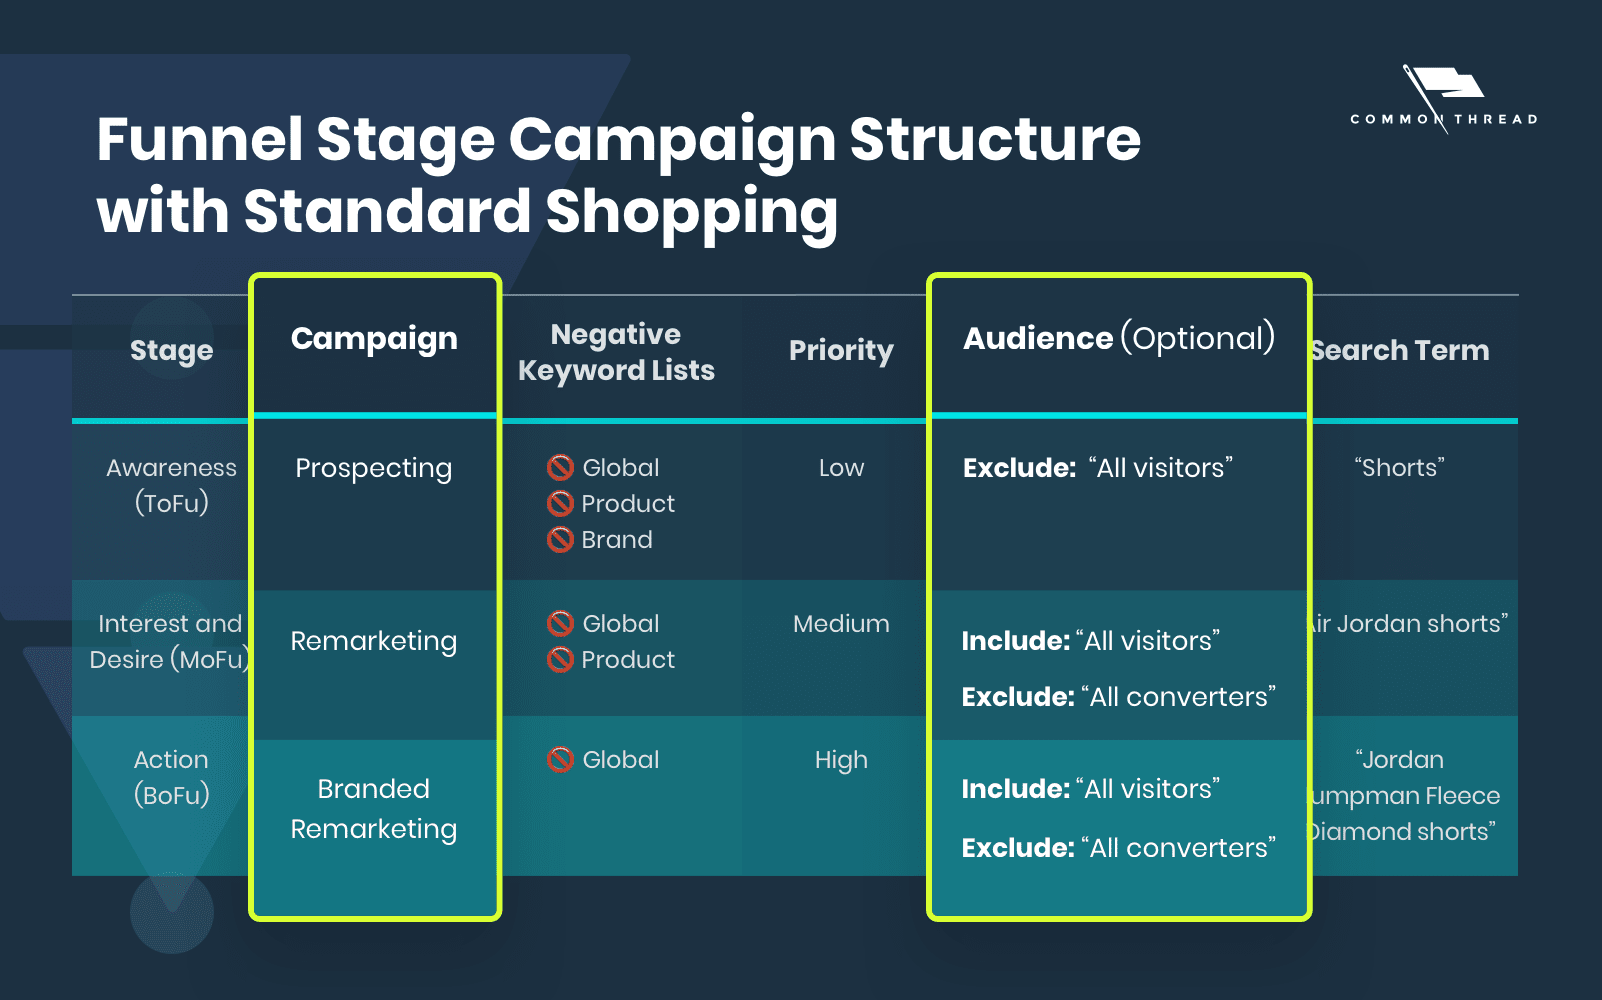 Funnel Stage Campaign Structure with Standard Shopping: Campaign and Audience